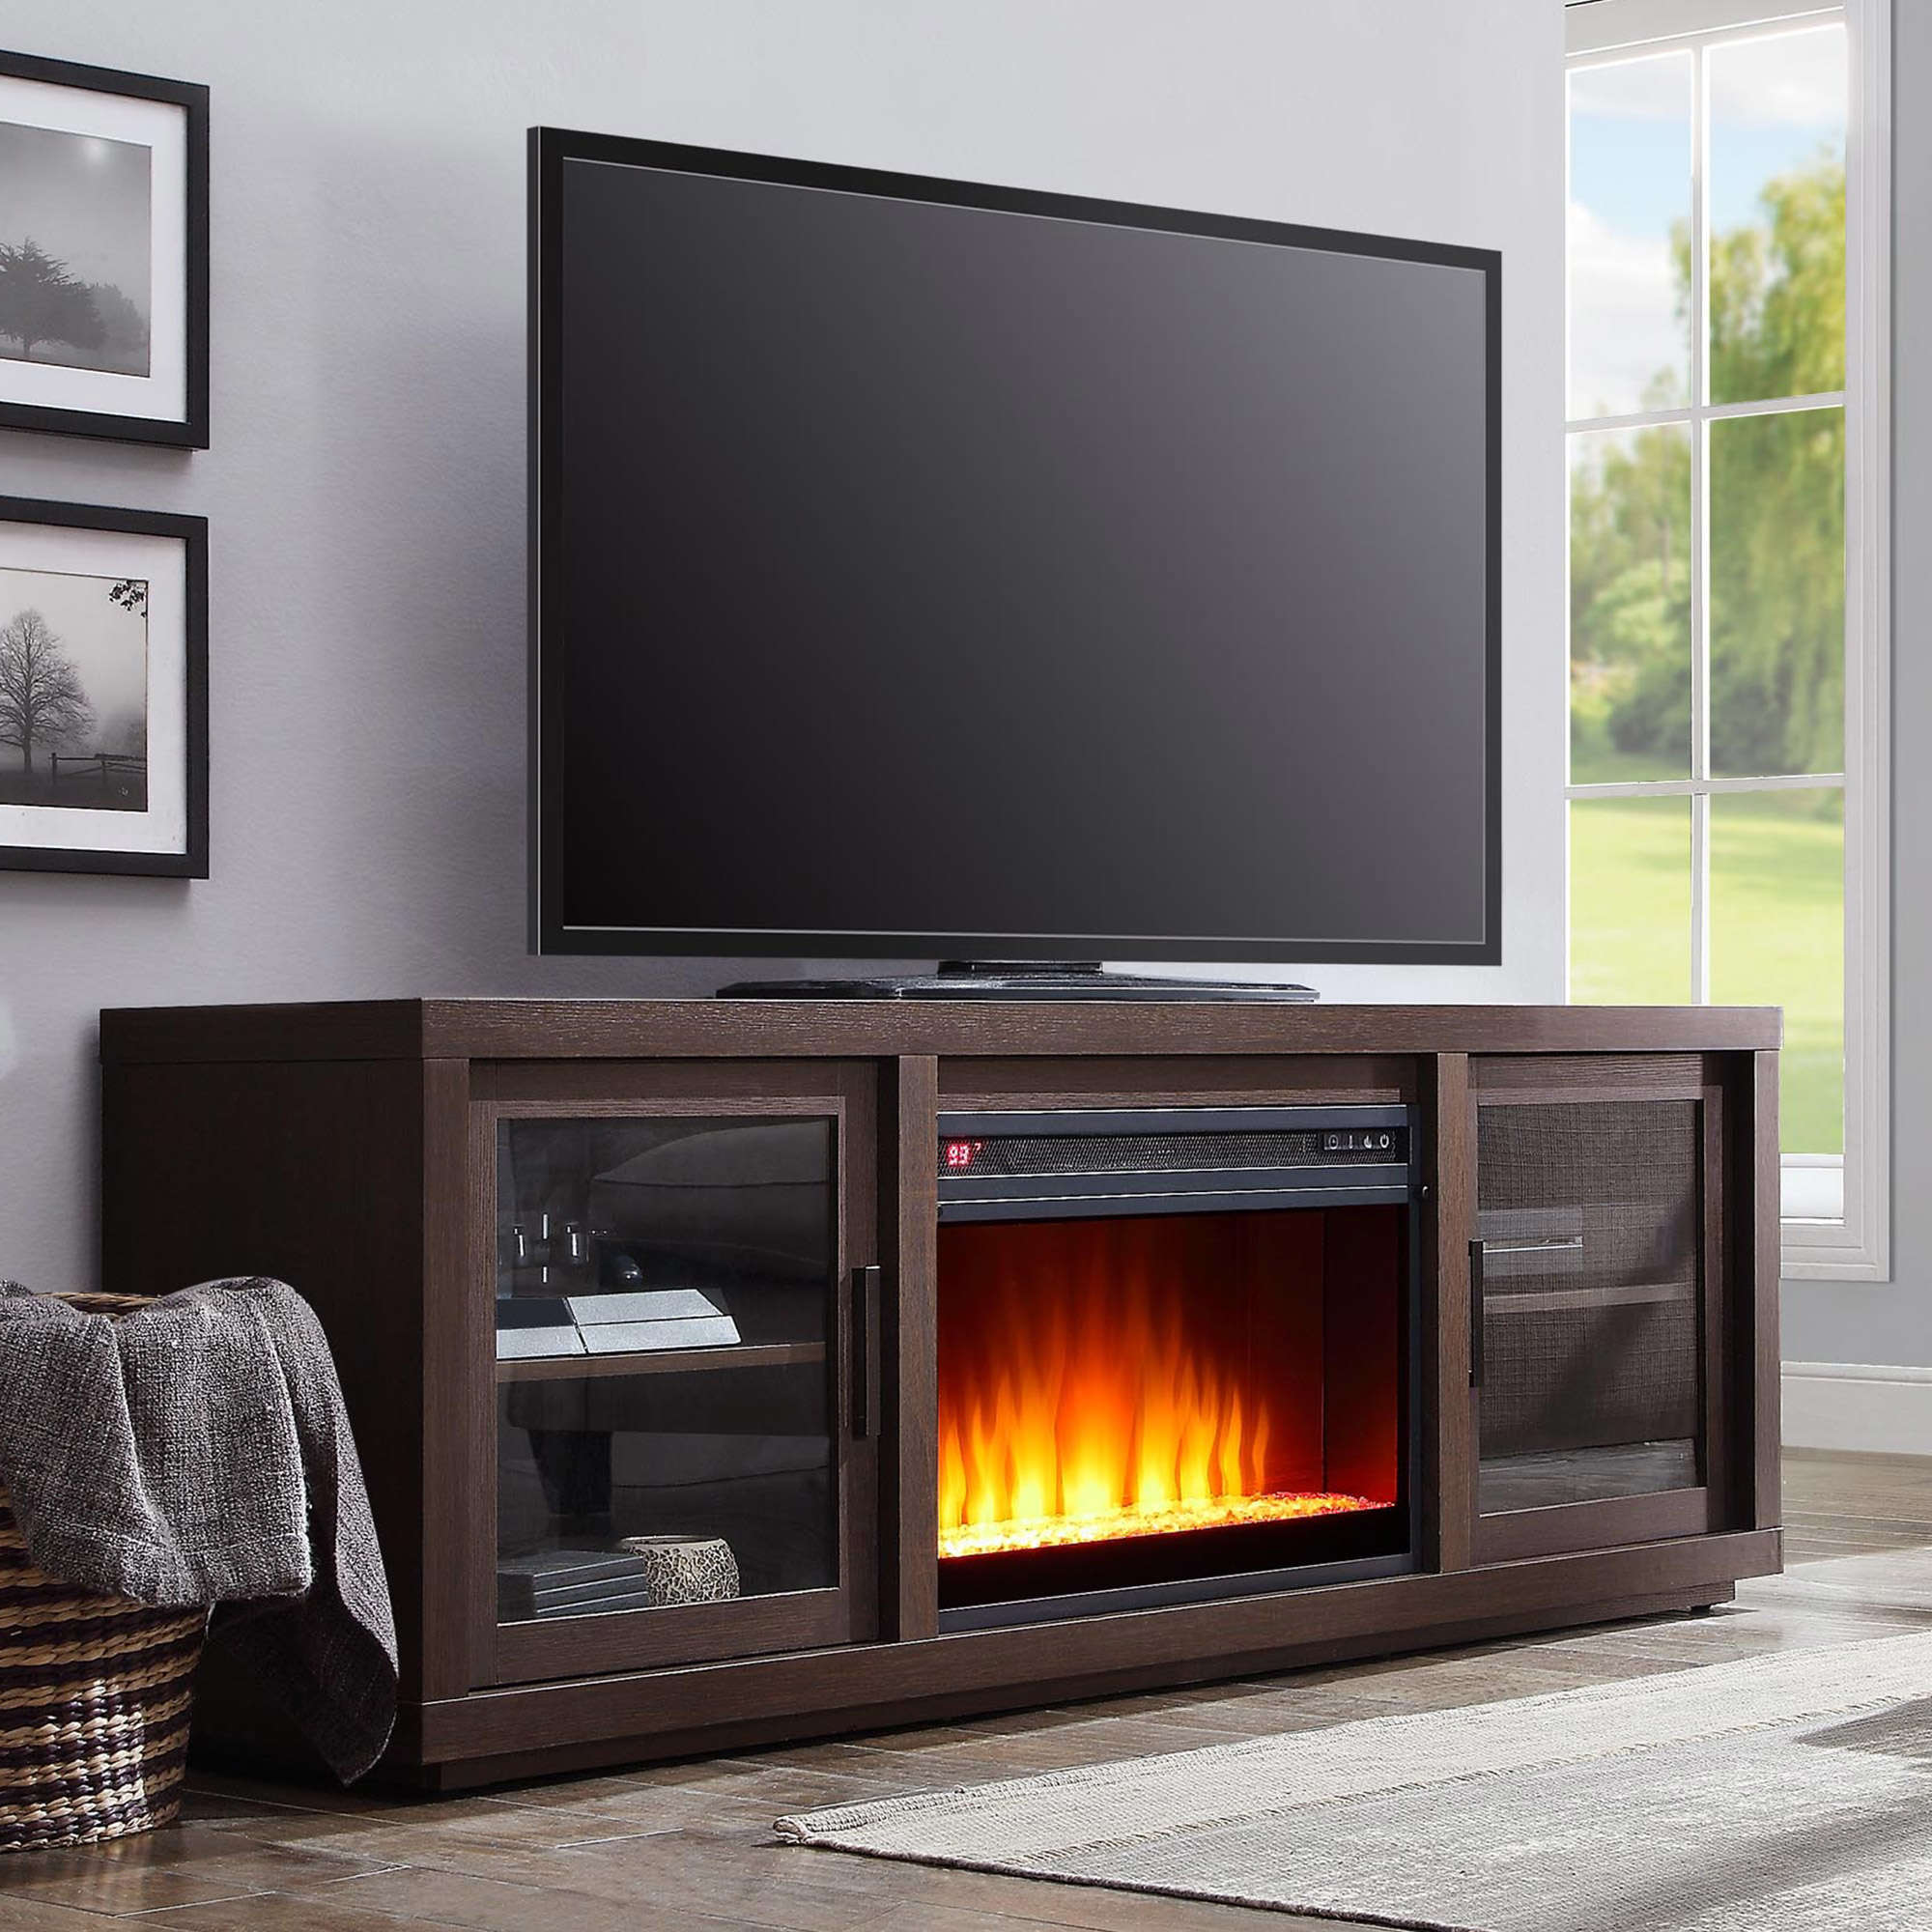 "Better Homes & Gardens Steele Media Fireplace Console, Television Stand for TVs up to 80"", Espresso Finish"